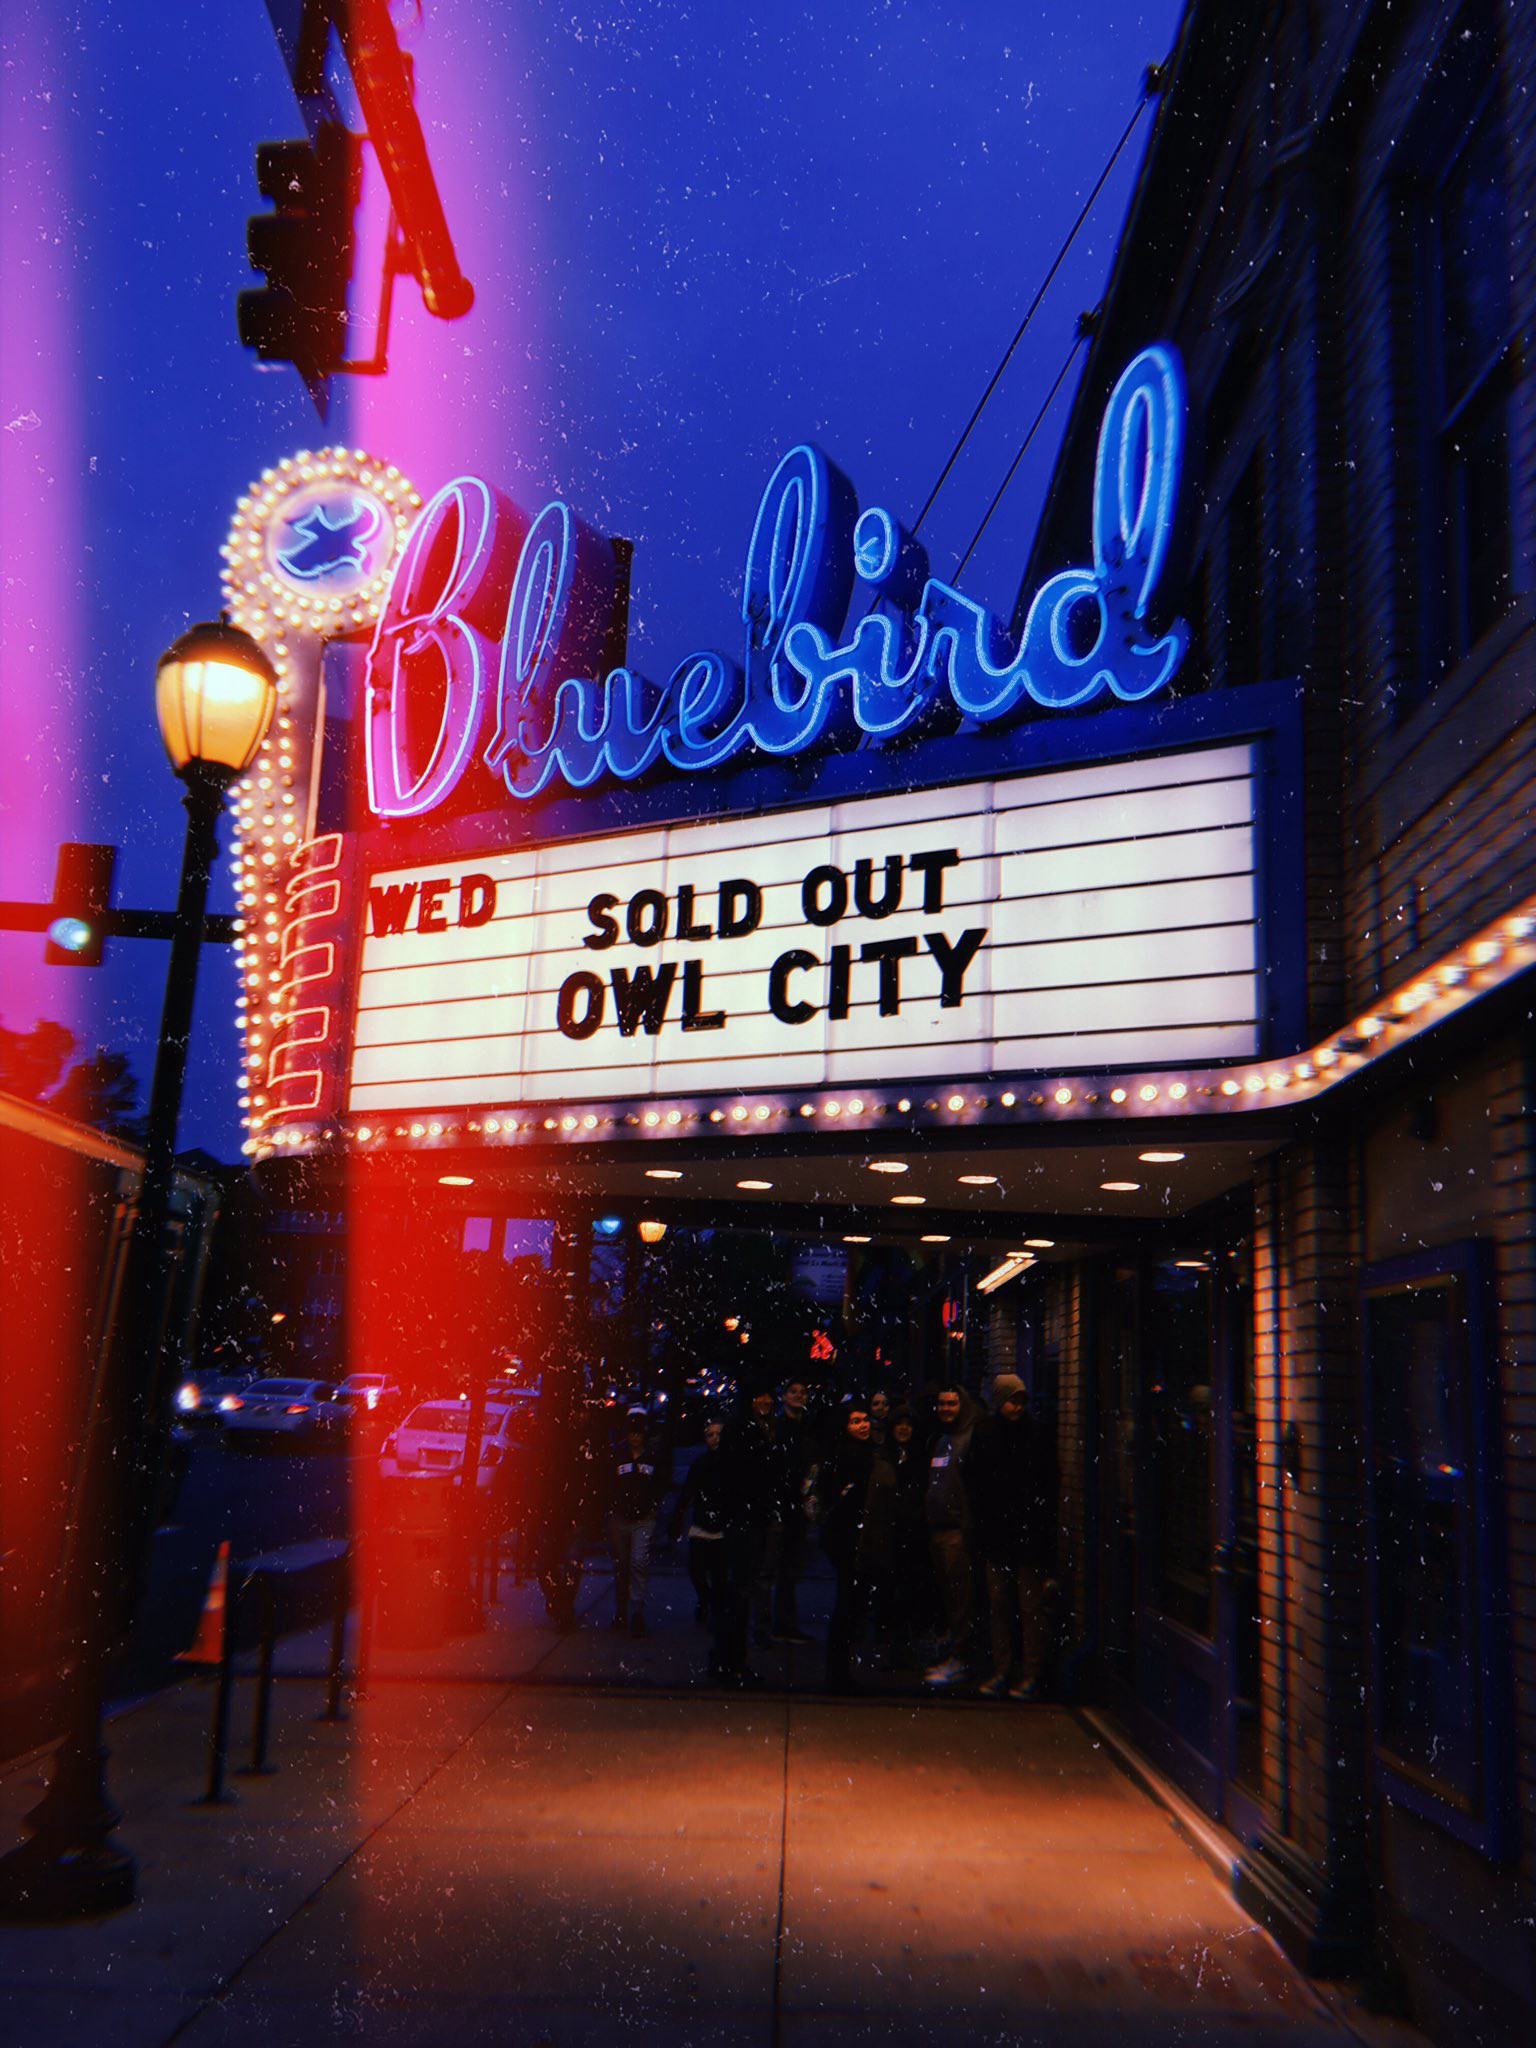 Why Owl City deserves far more respect  - Birds With Teeth